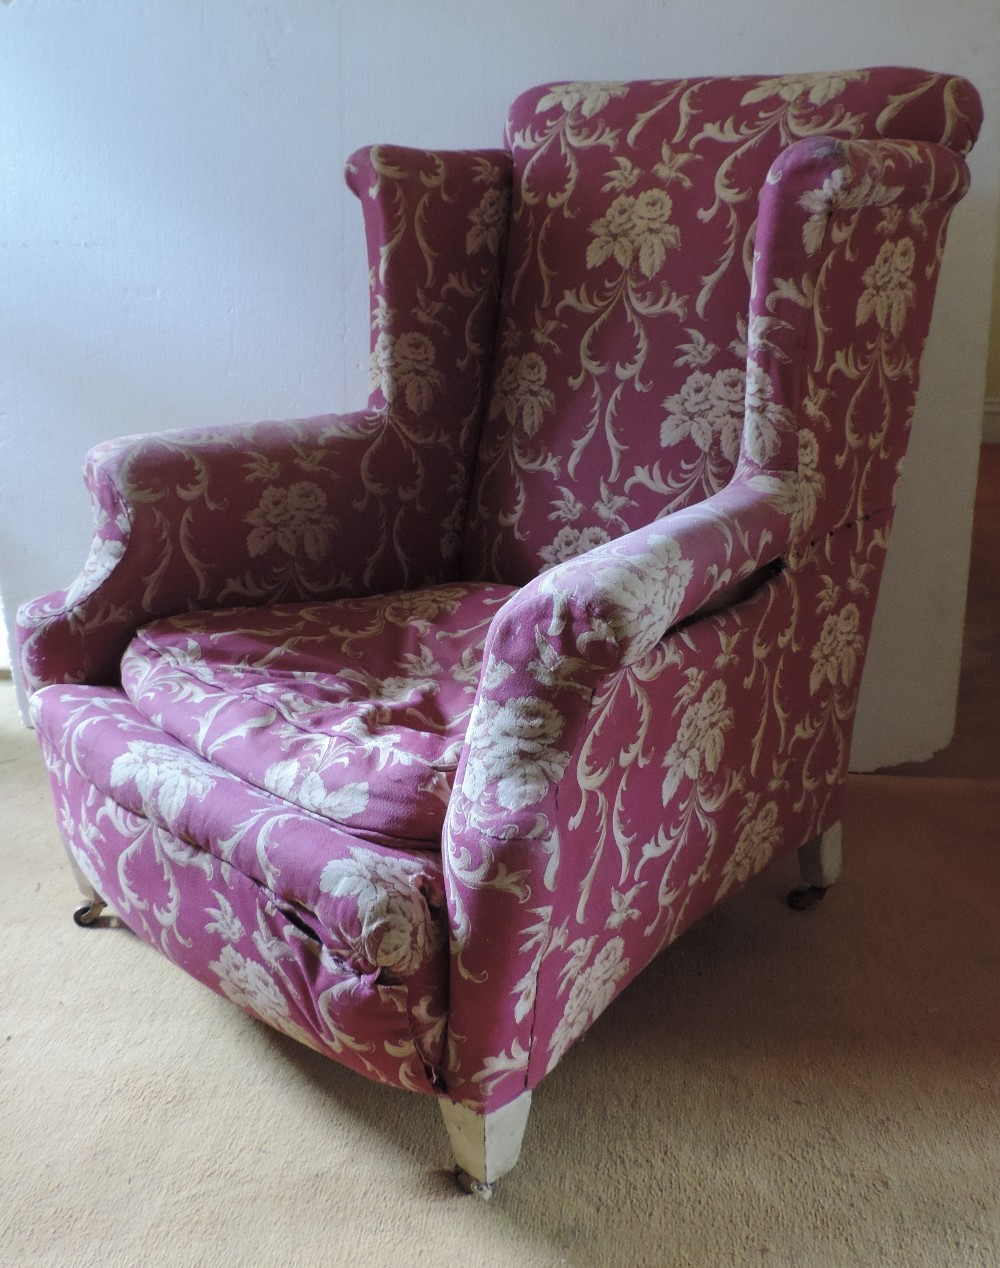 A 19th Century upholstered wing back Arm